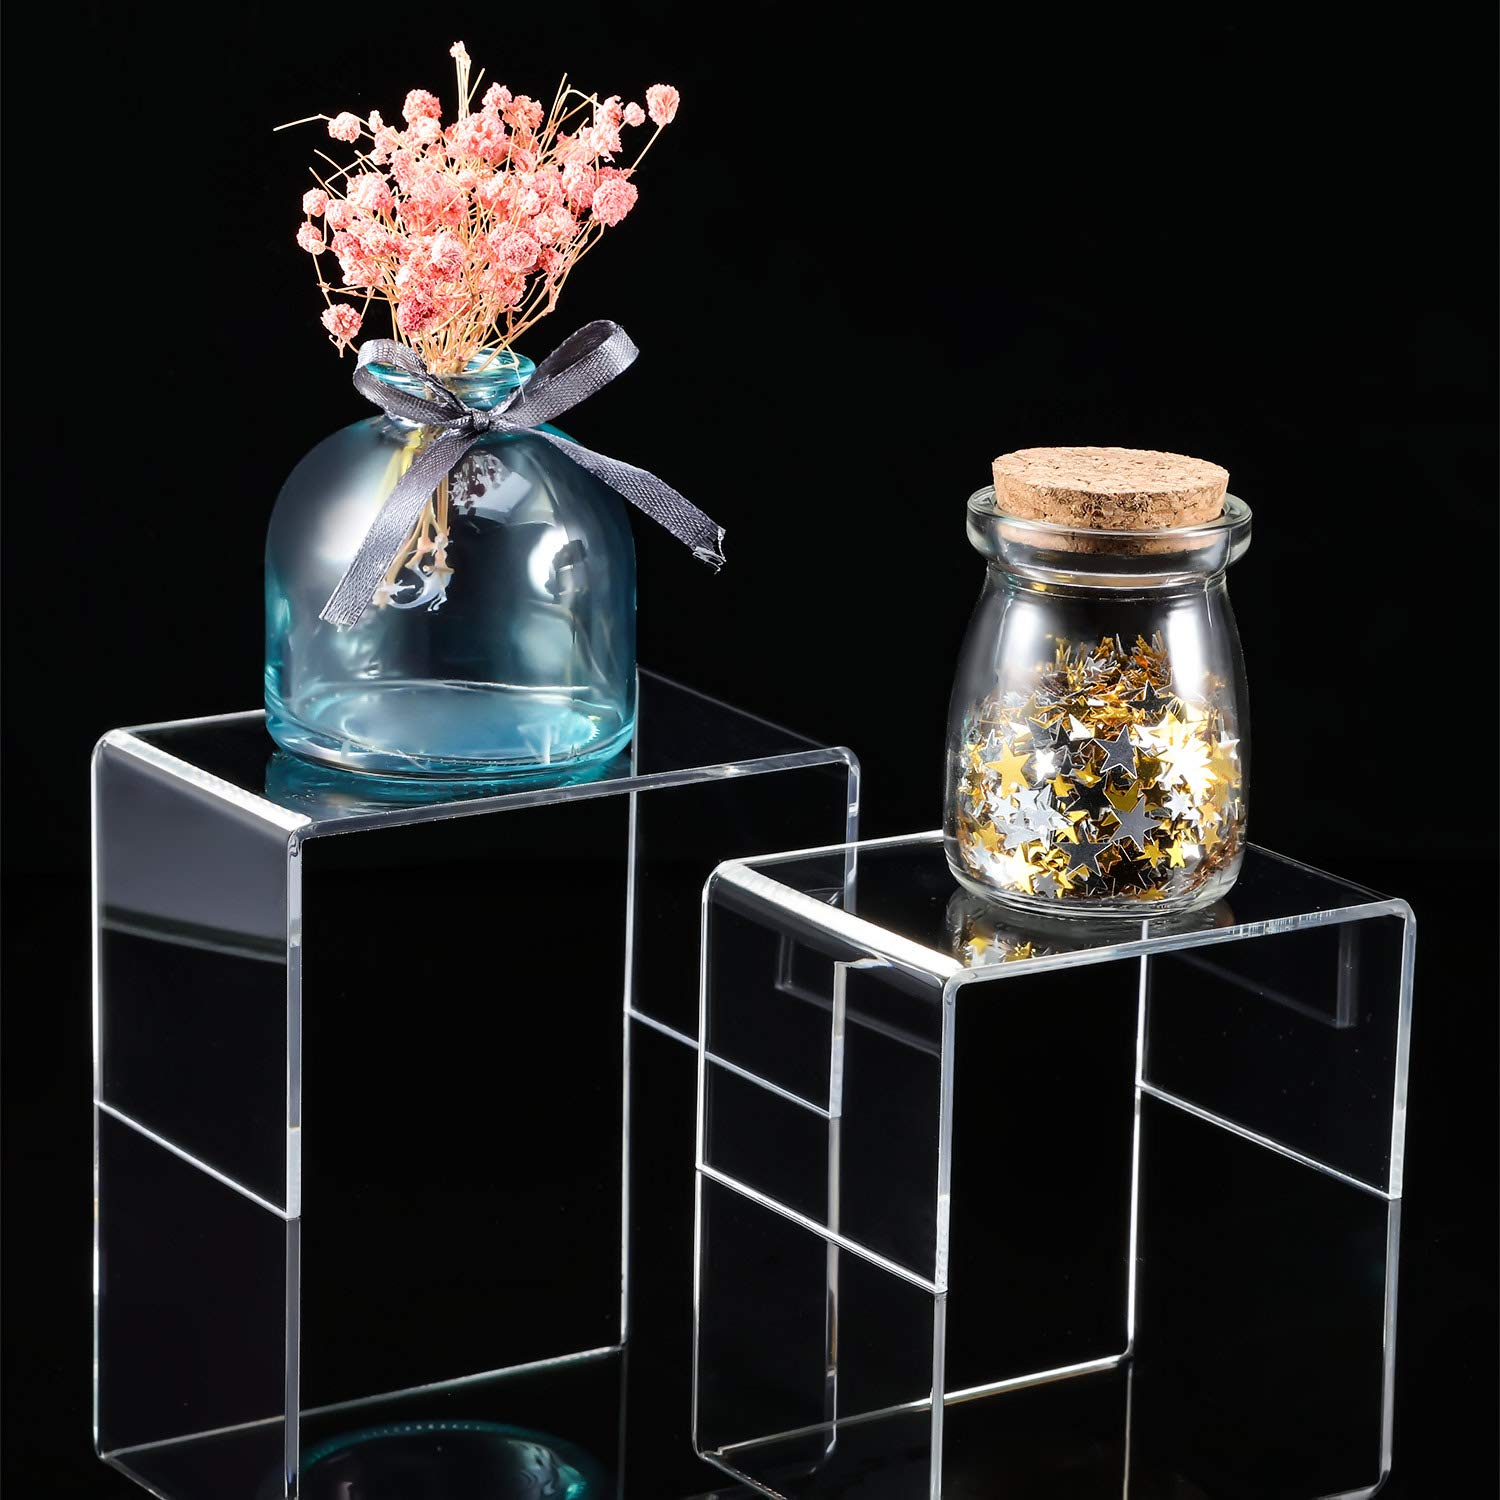 Chuangdi 4 Pieces Clear Acrylic Display Risers, Jewelry Display Risers Showcase Fixtures, Tear Off The Protective Film Before Use (4.1 Inch and 5 Inch) by Chuangdi (Image #5)